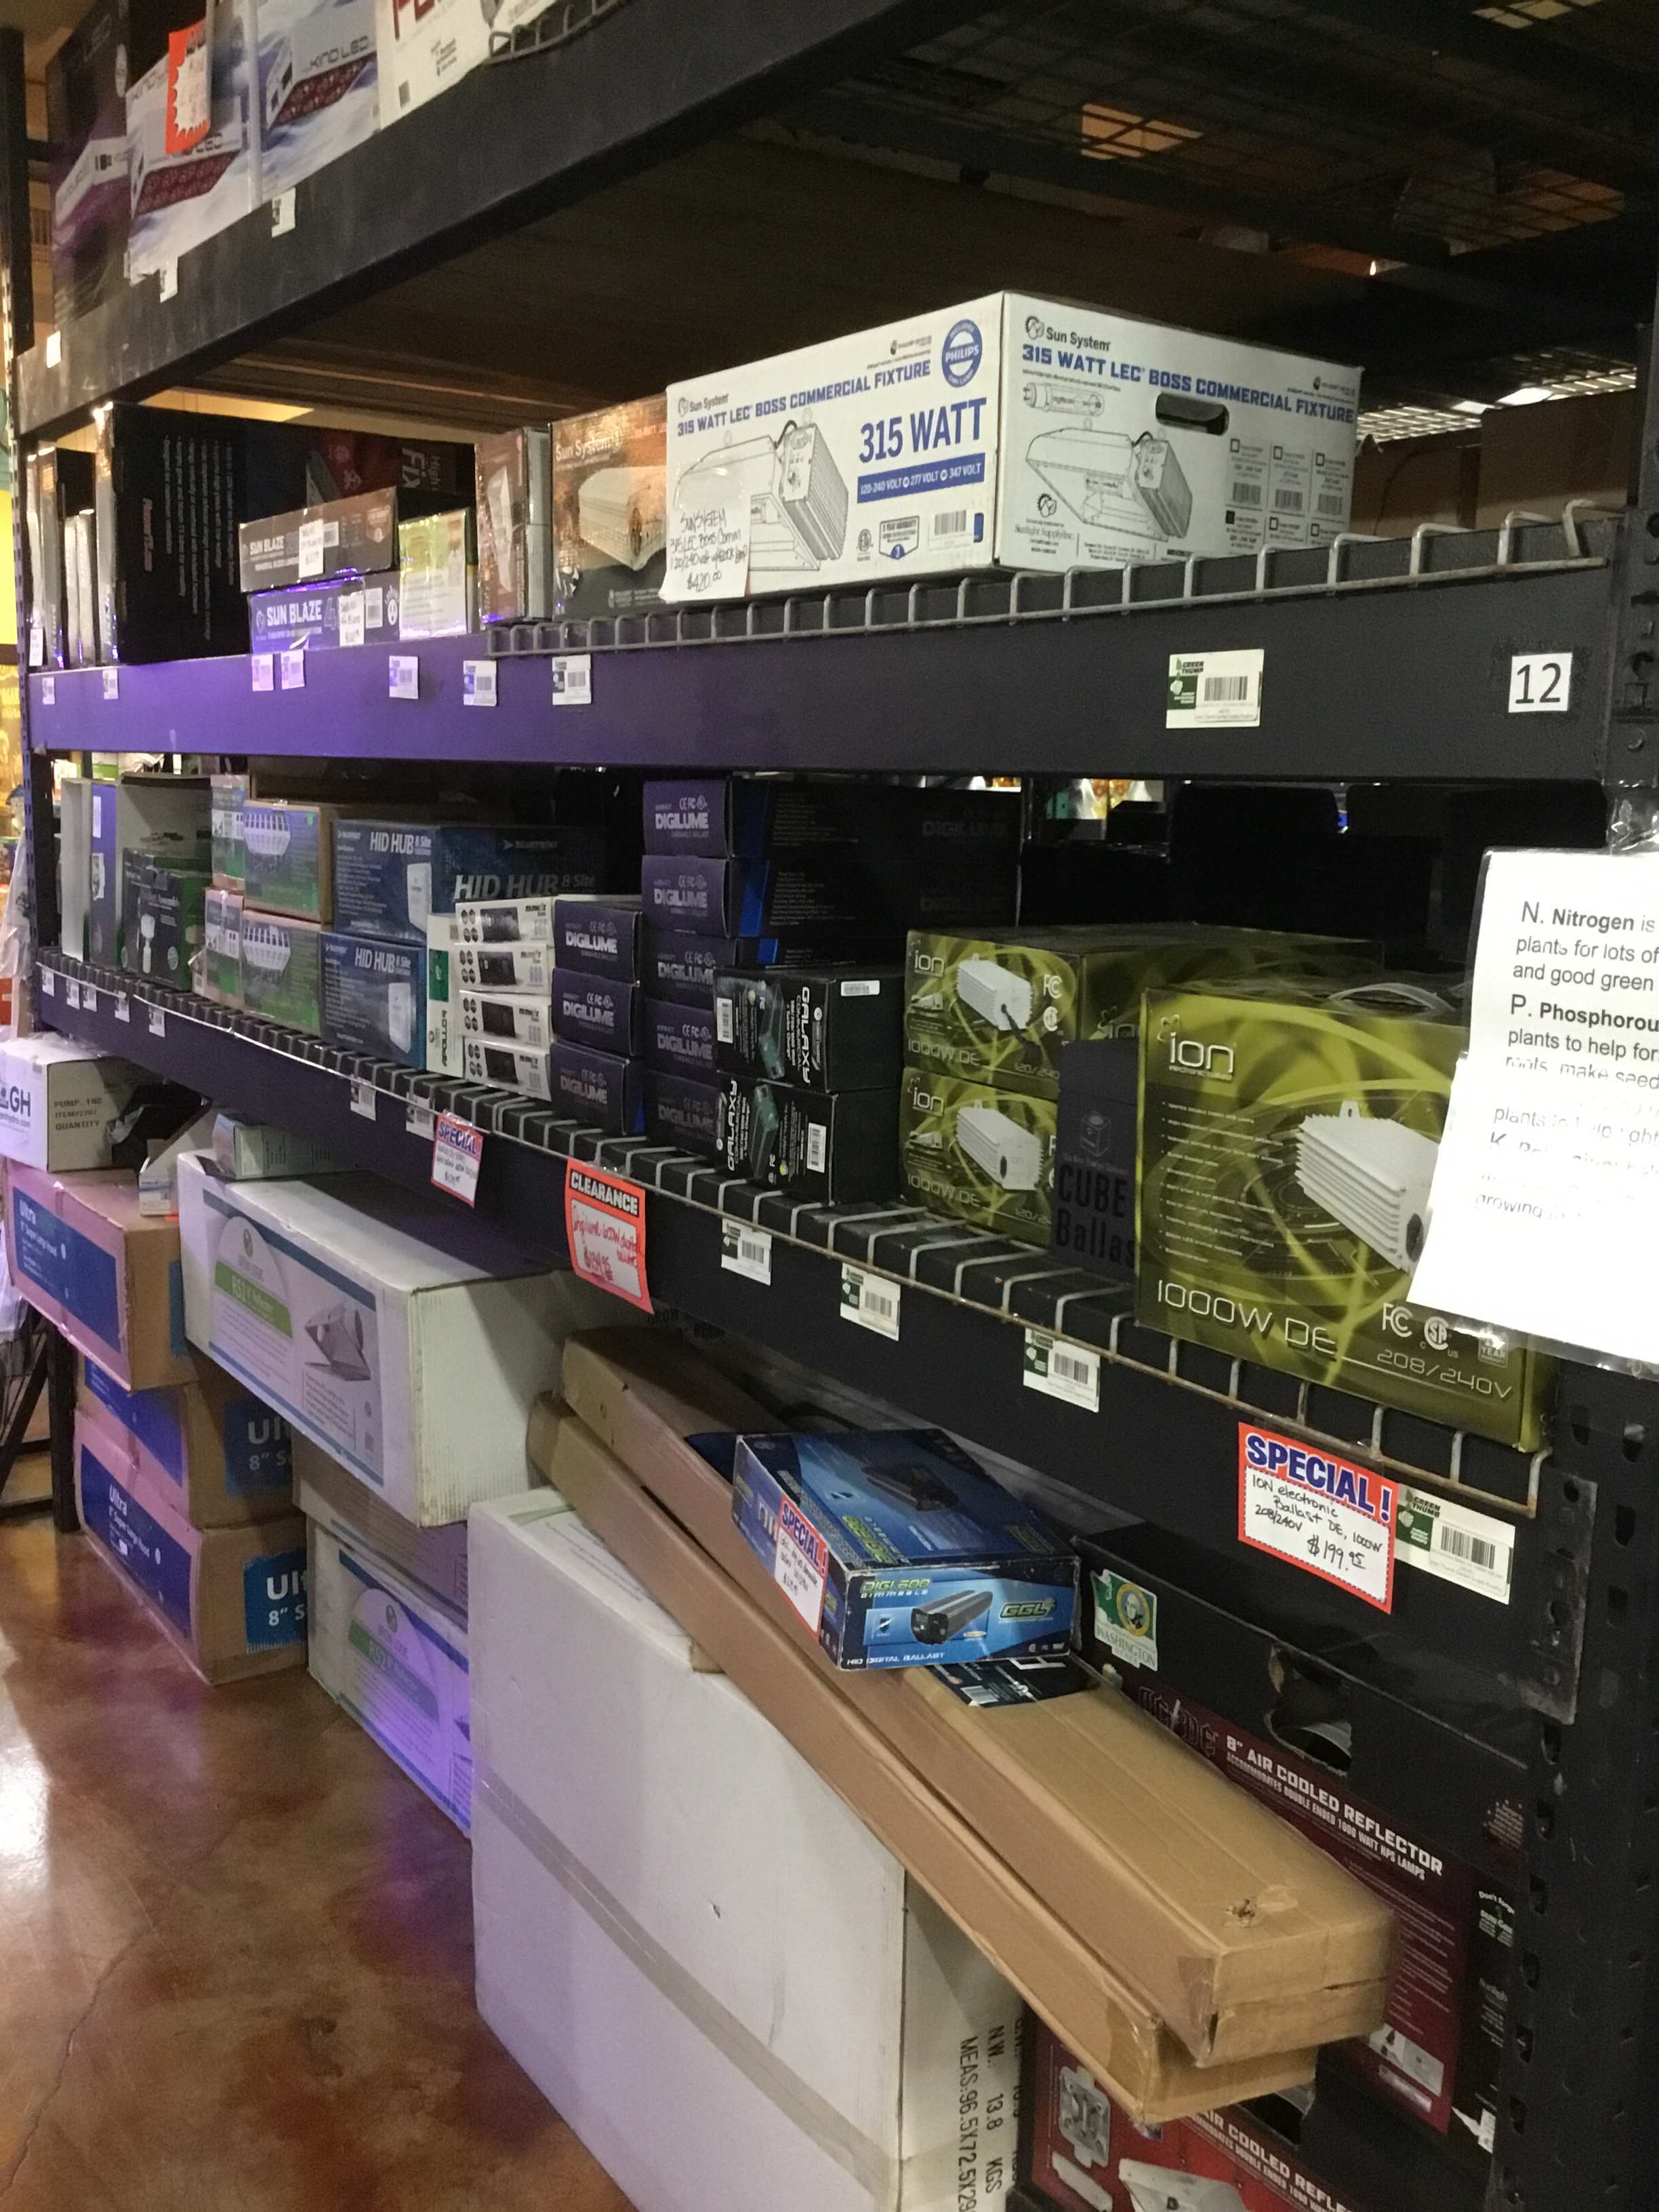 Garden supplies - Lights, dirt, pots, pumps, fertilizers and more. We have the supplies and the know how for any indoor or out door garden need.